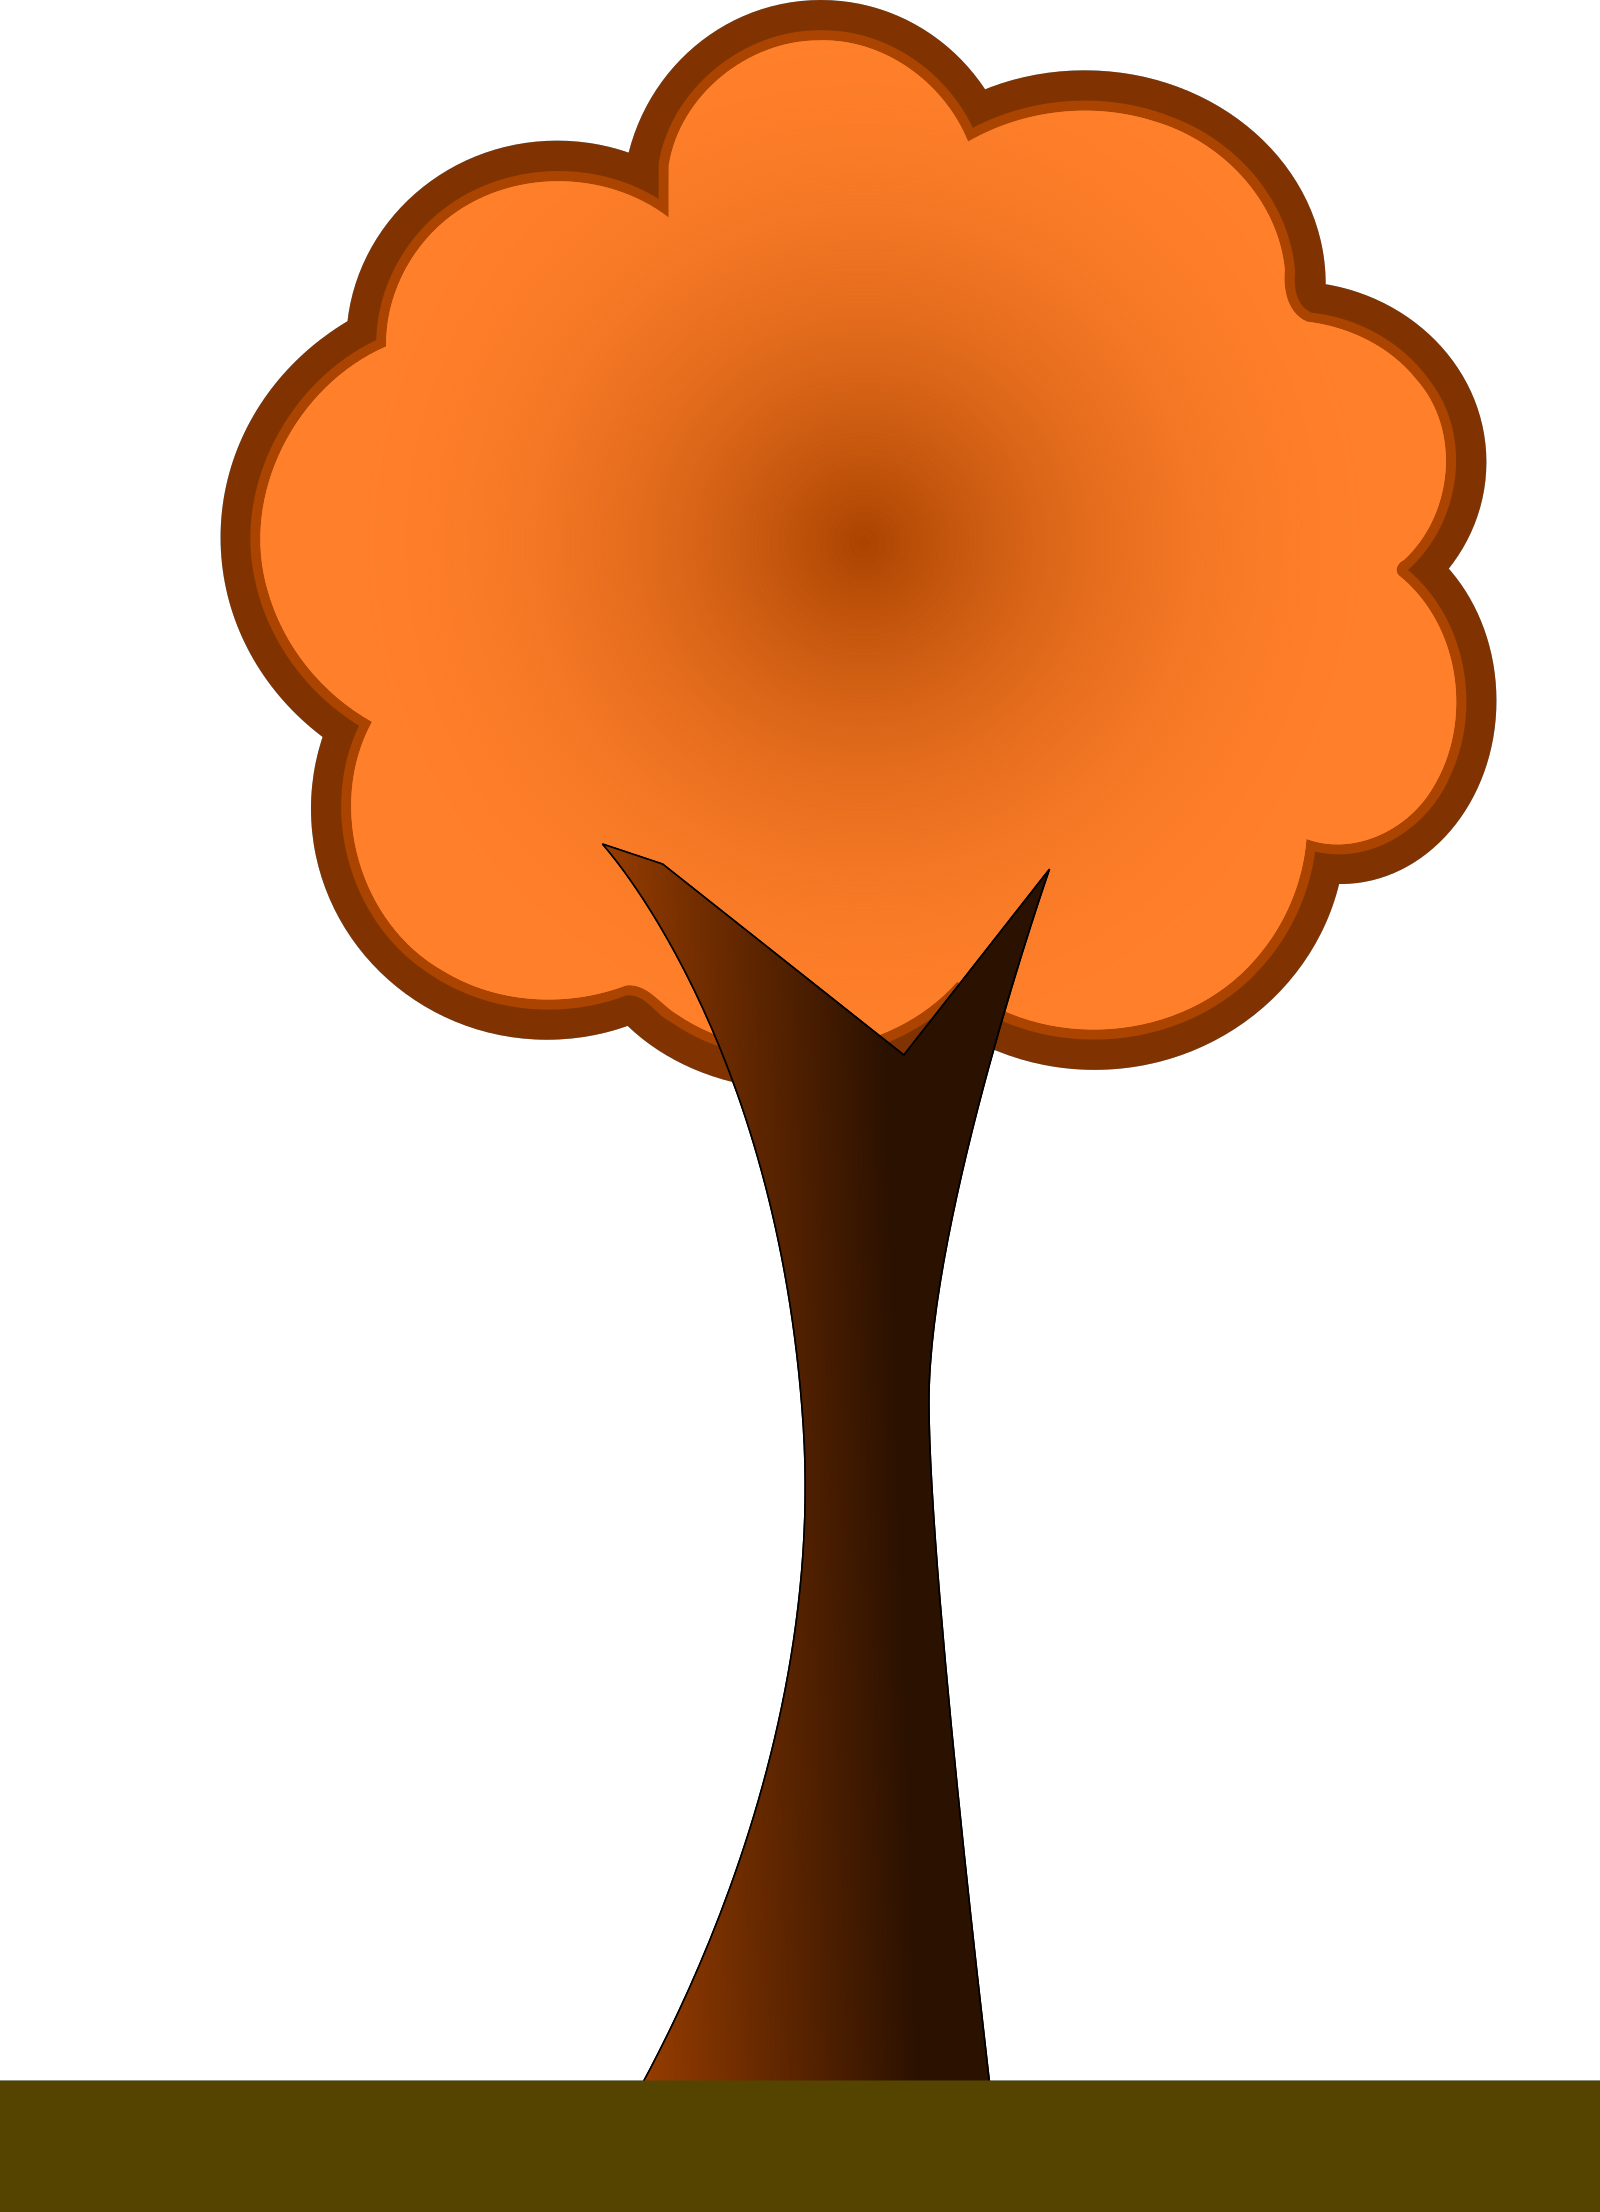 Large 4 Layer Orange Fir Tree SVG Clip arts